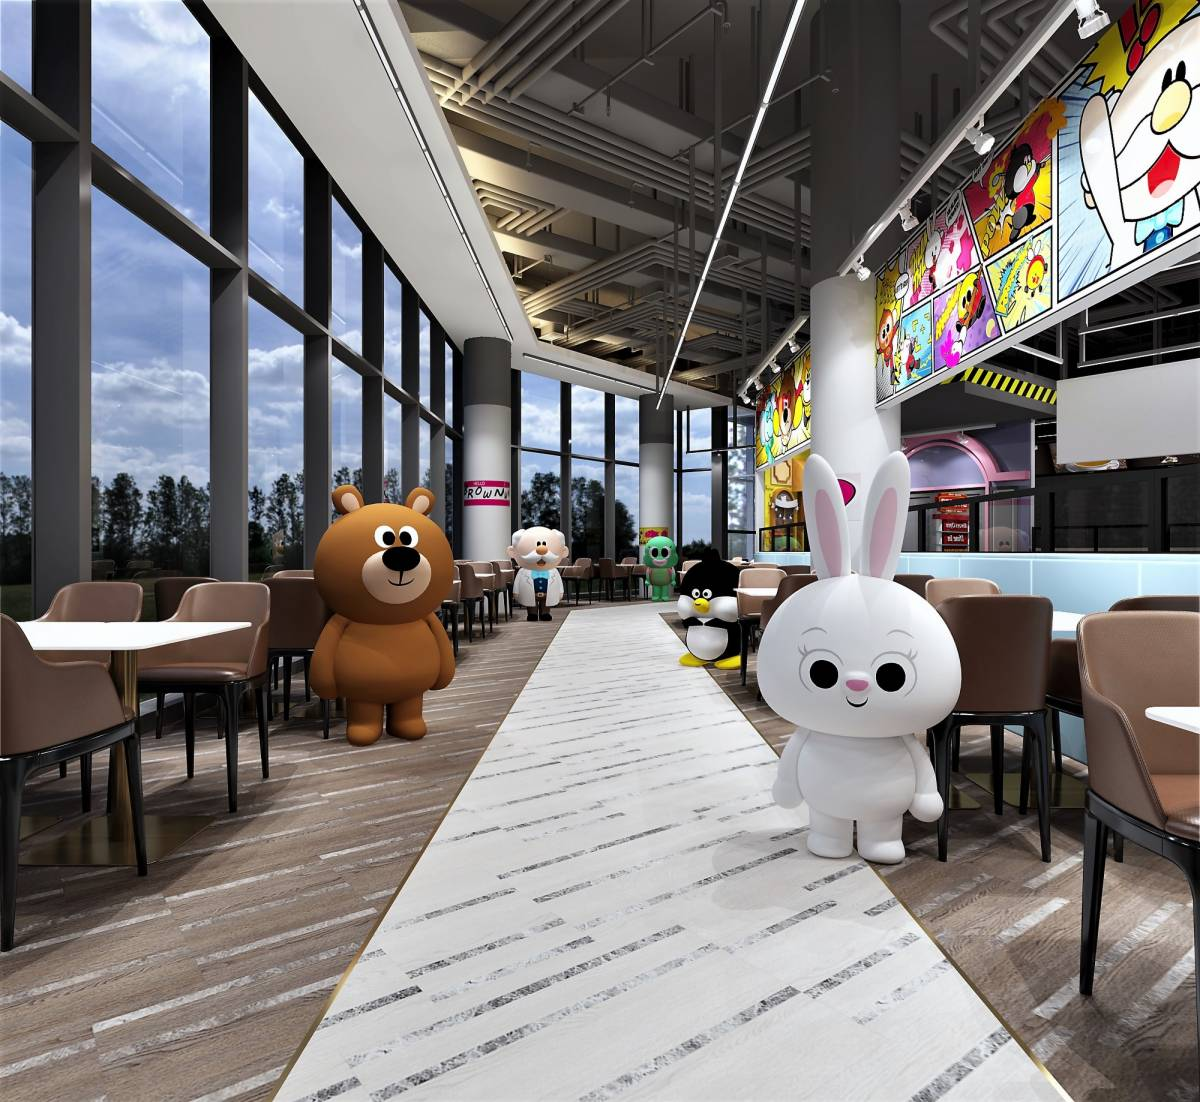 GET READY FOR KIZTOPIA – SINGAPORE'S BIGGEST INDOOR EDUTAINMENT PLAYGROUND IN A SHOPPING MALL, TO OPEN AT MARINA SQUARE